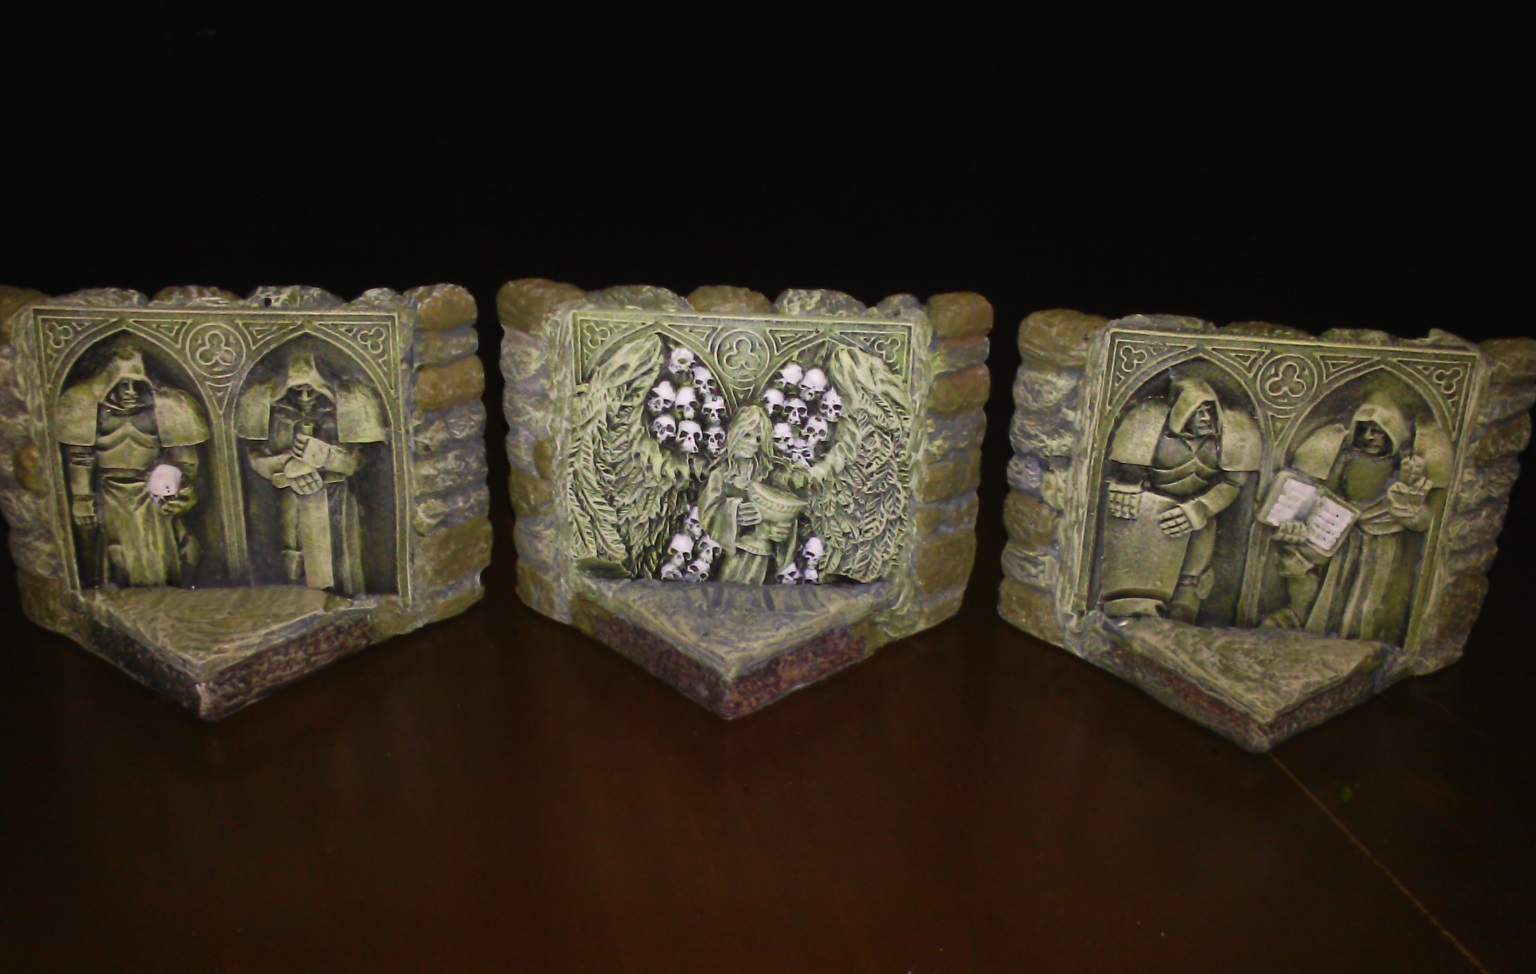 Dwarven Forge Conversion with Scibor wall reliefs